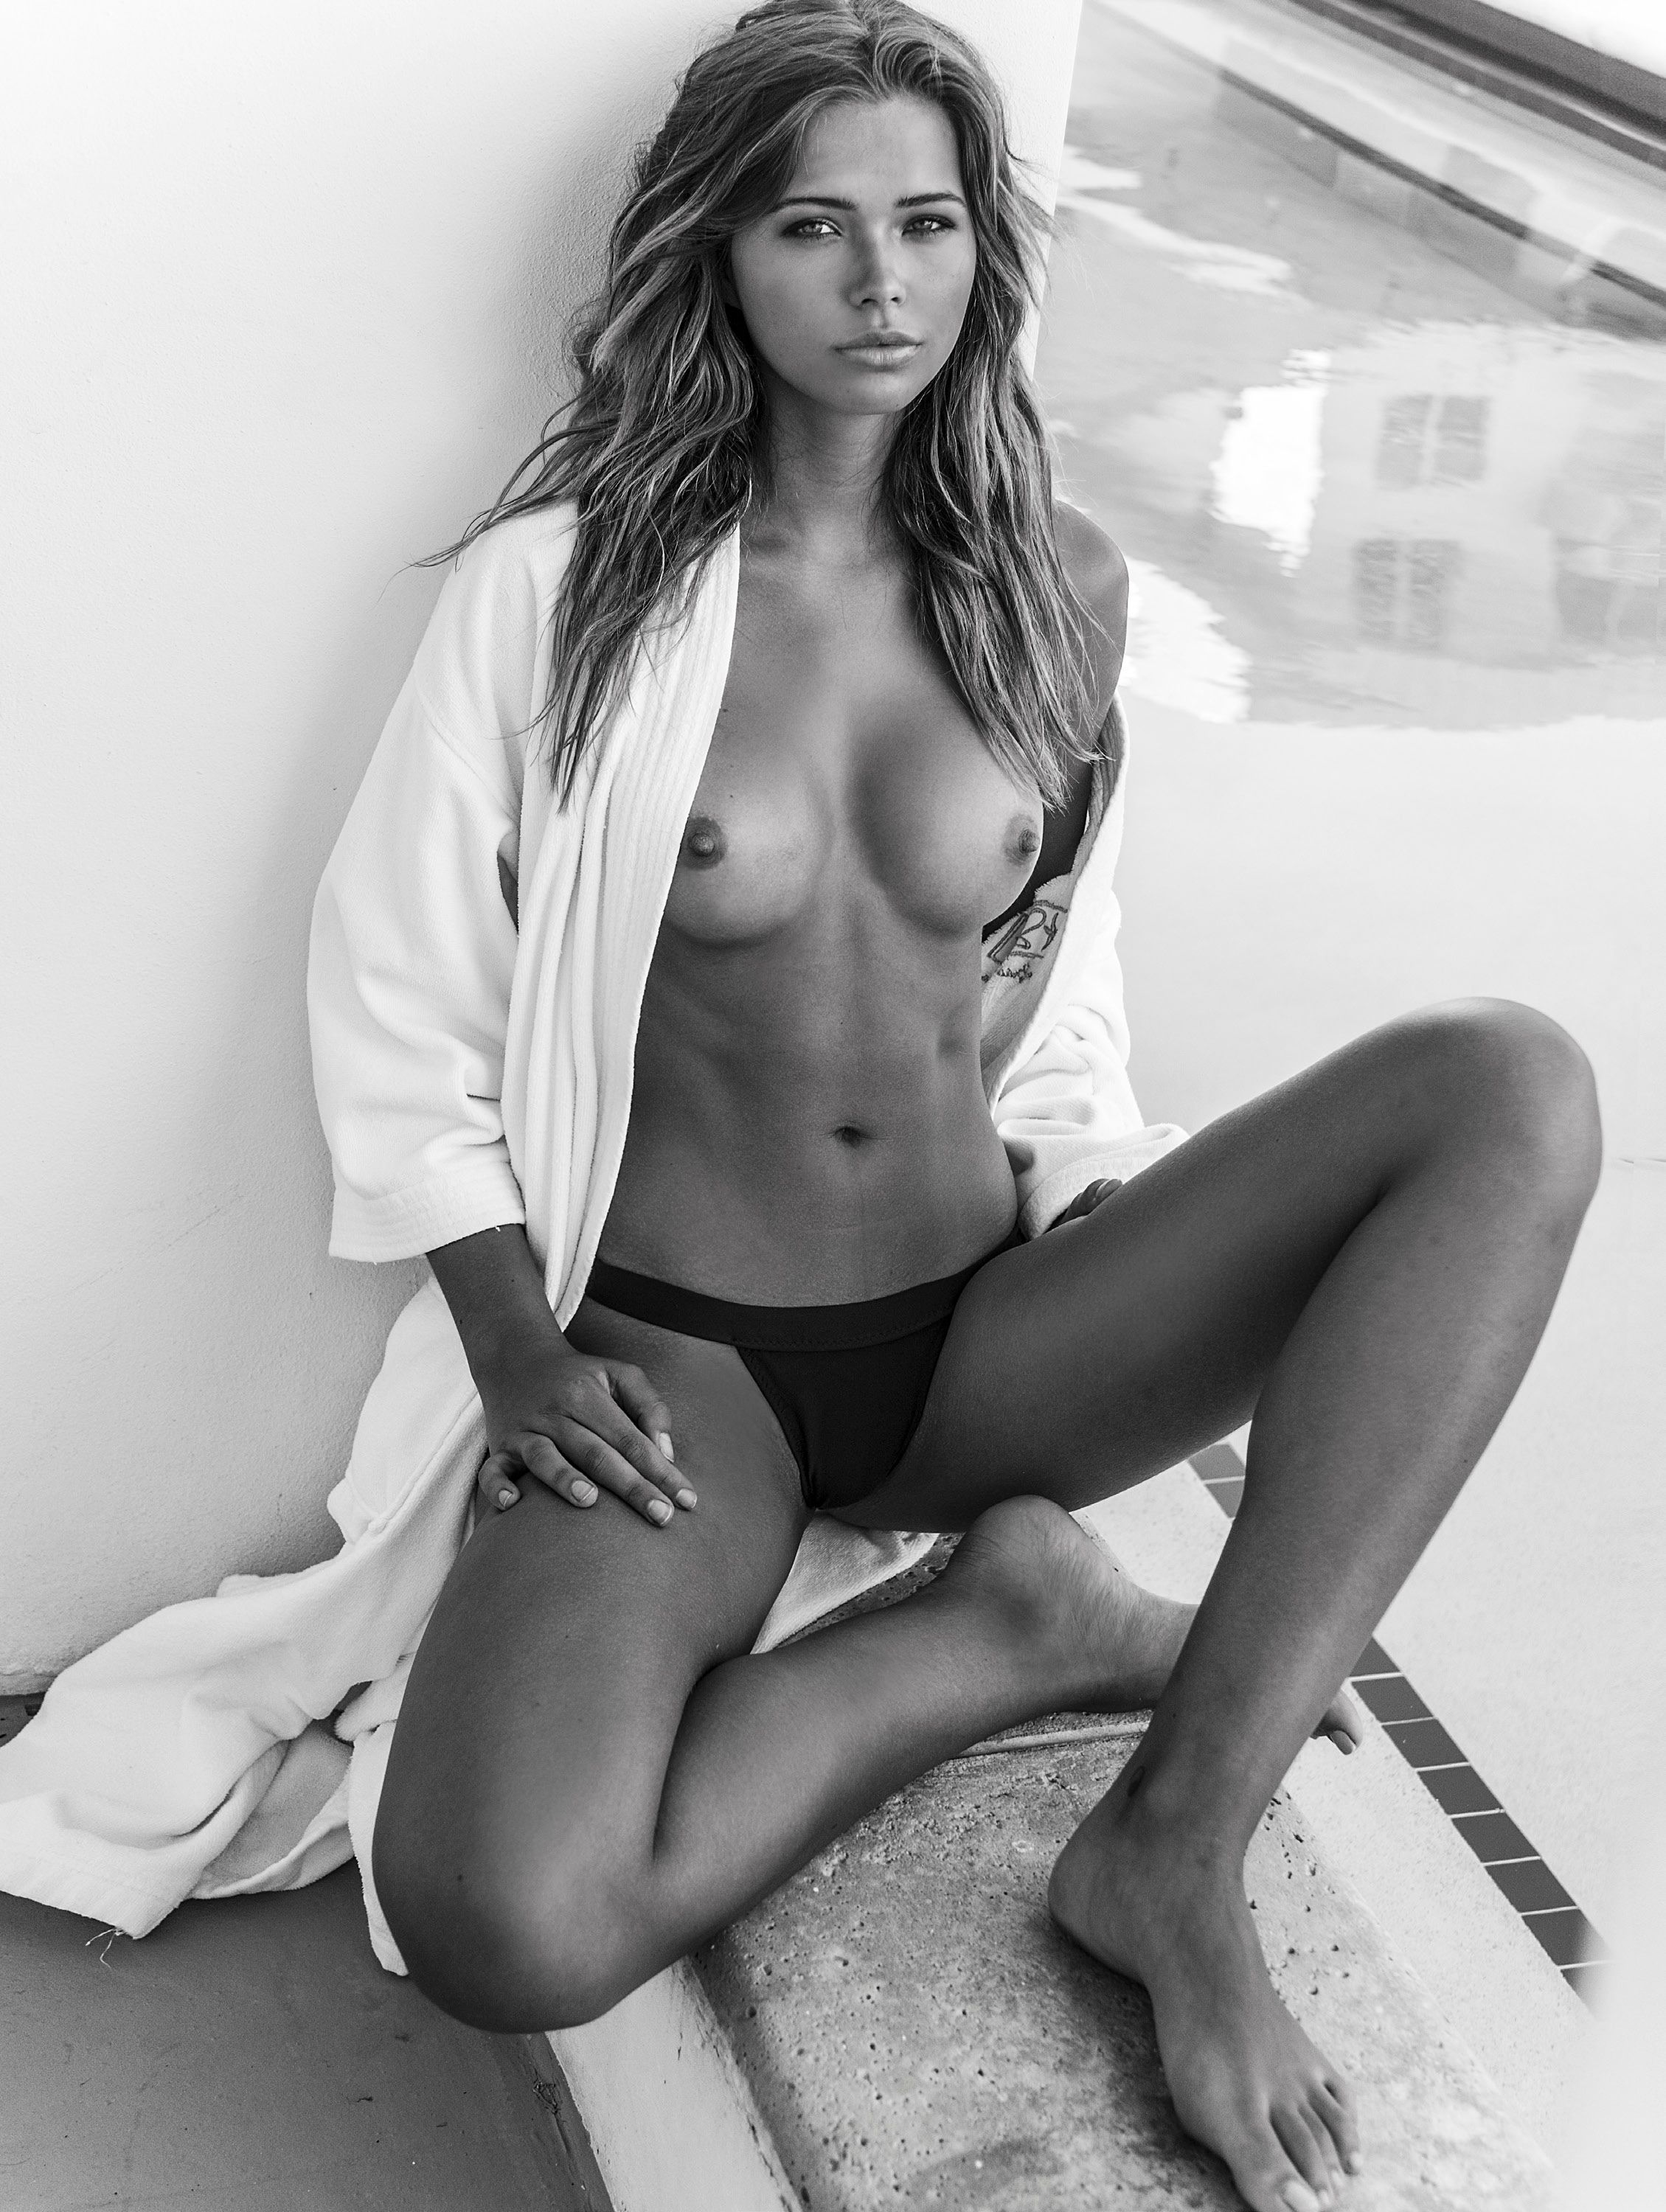 Sandra Kubicka Nude Photo...